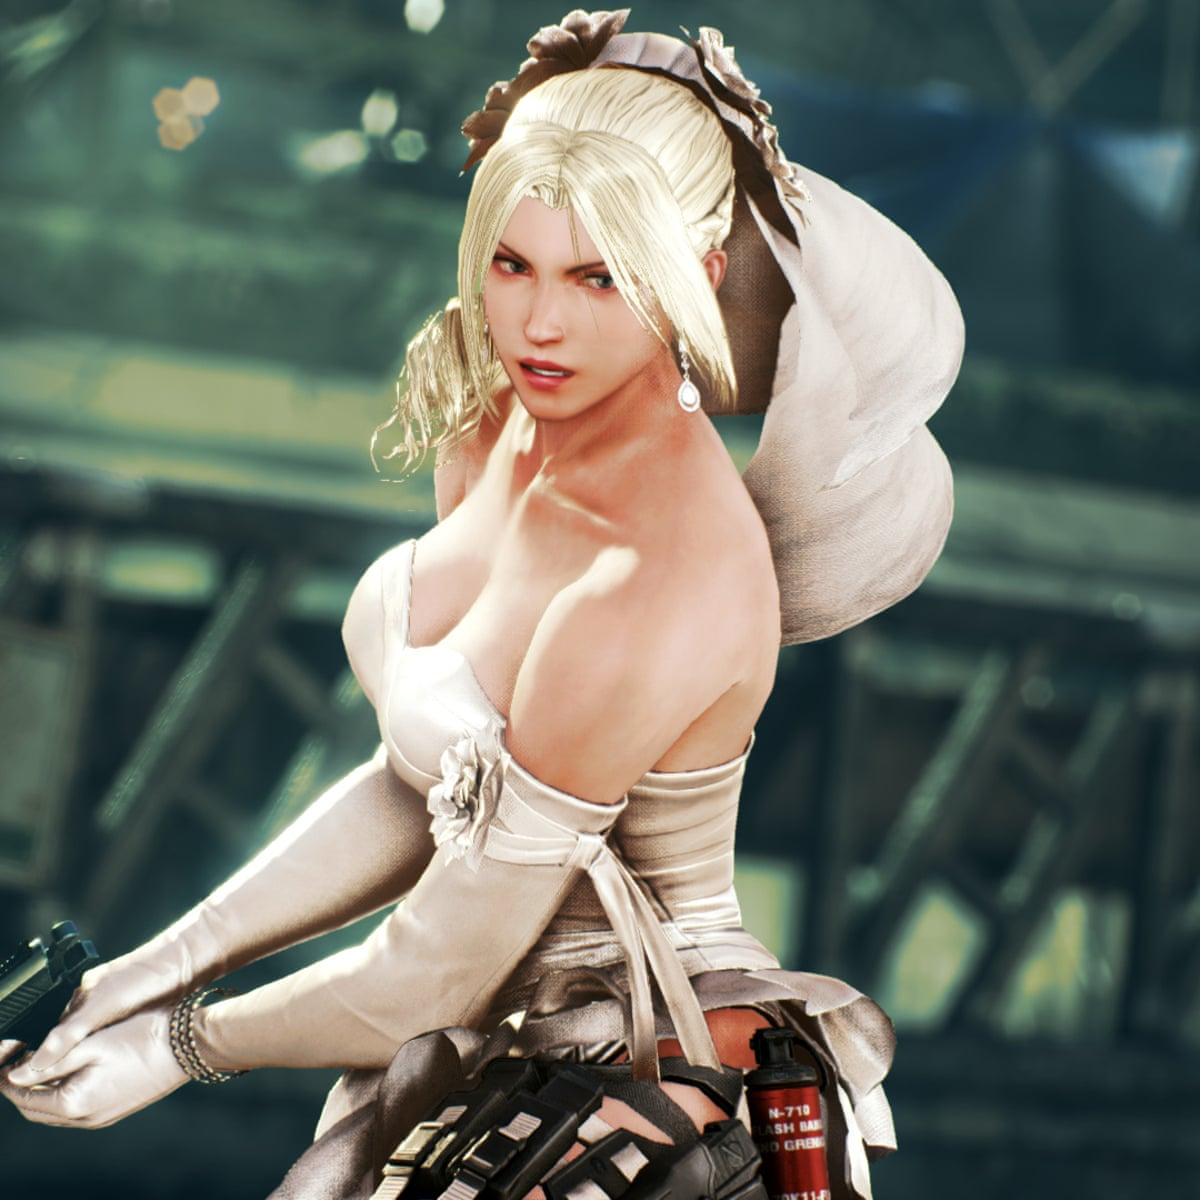 Tekken The Fighting Game That Gives Women The Meatiest Stories Fighting Games The Guardian